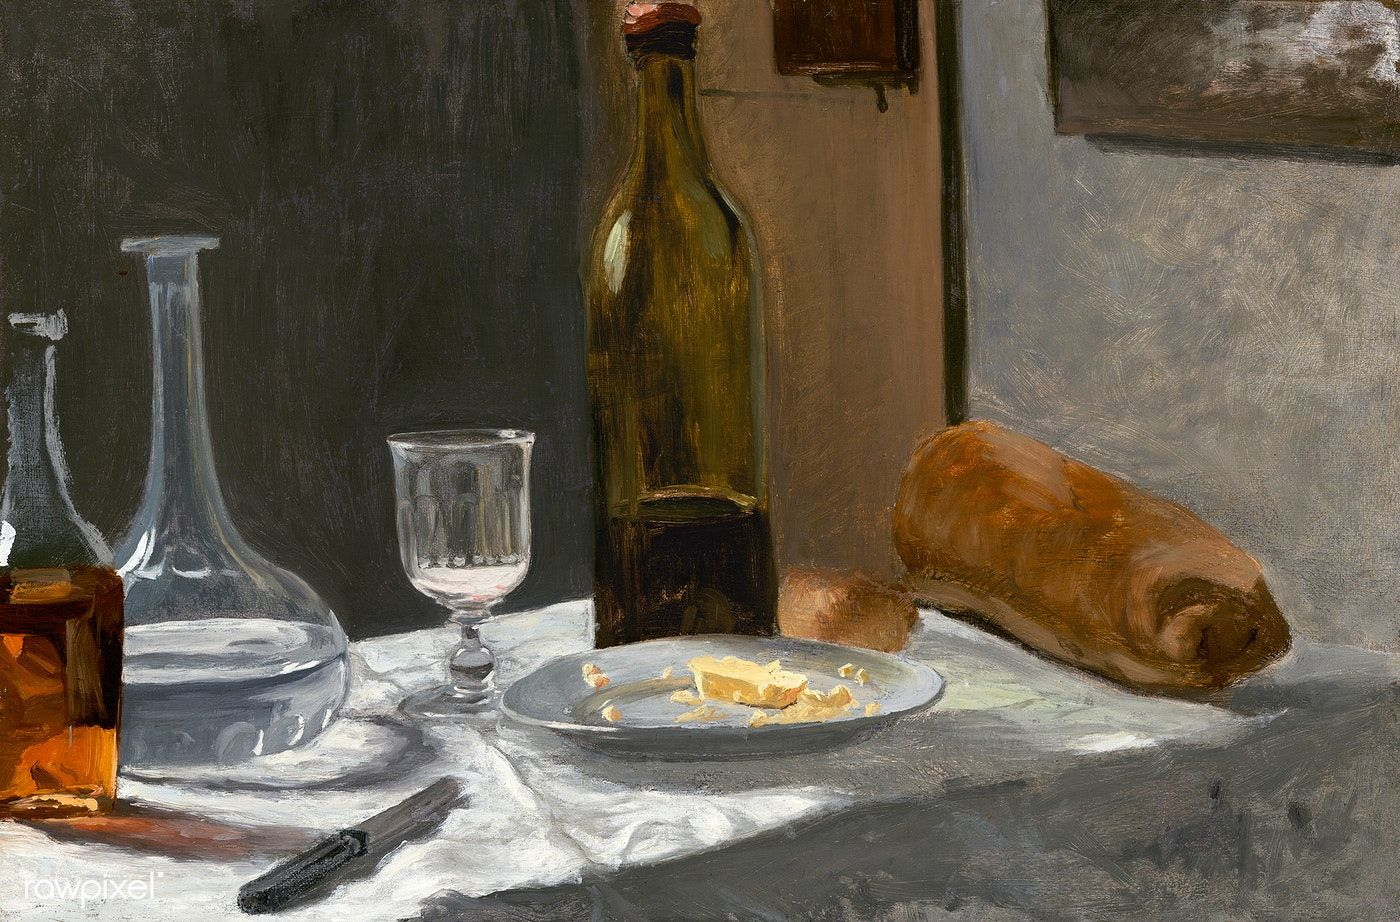 Still Life with Bottle, Carafe, Bread, and Wine (1862 –1863) by Claude  Monet. Original from the National Gallery of Art. Digitally enhanced by  rawpixel. |…